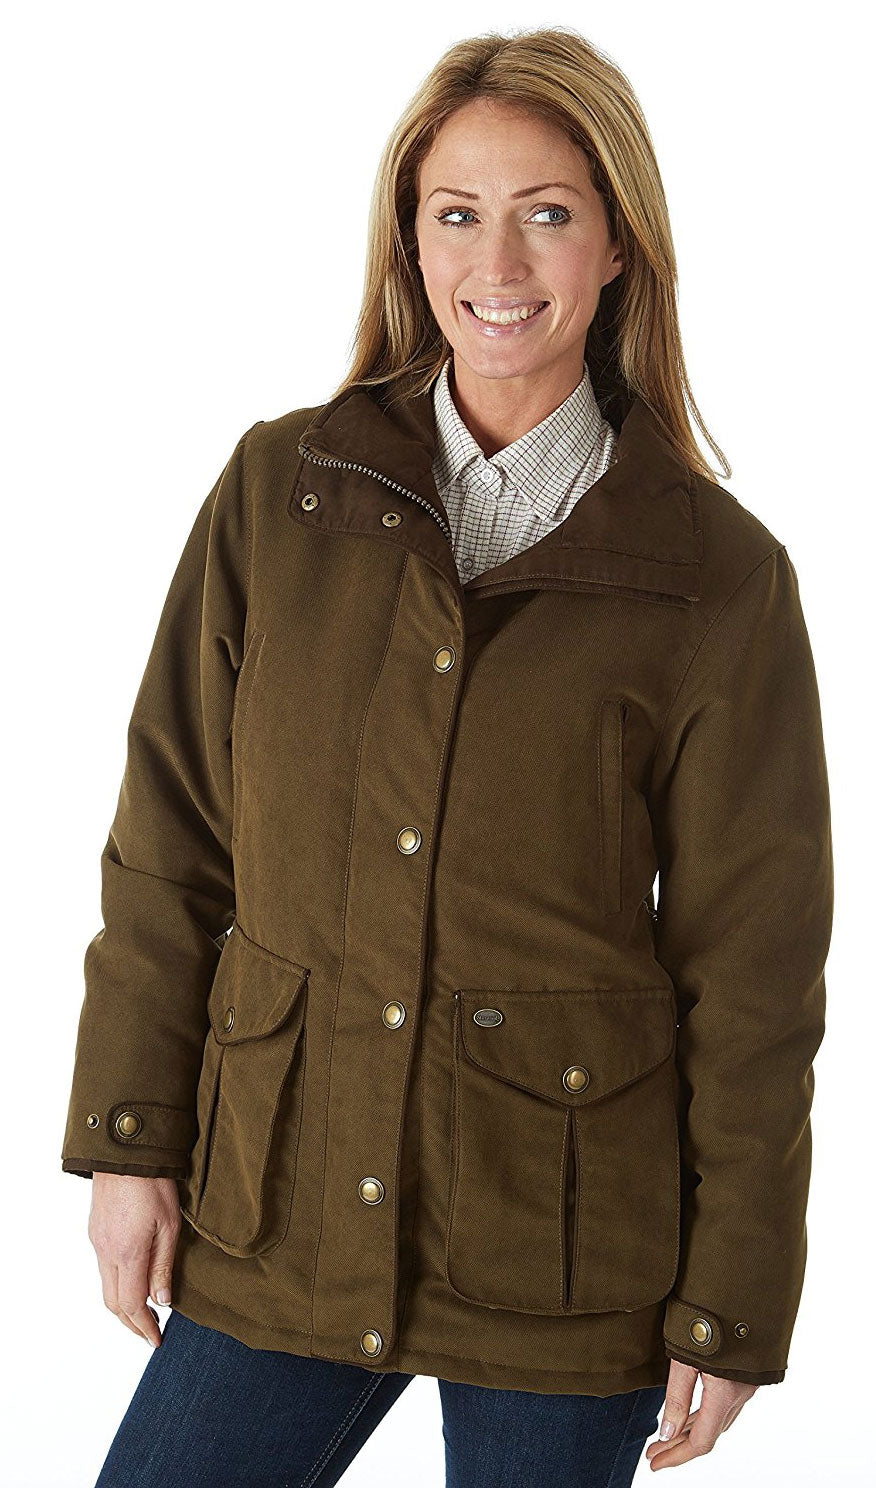 This waterproof and breathable jacket won't fail to impress you and your friends with it's noticeable quality, numerous features and exceptionally reasonable price tag - Sherwood Forest Norwood Waterproof Jacket moss olive